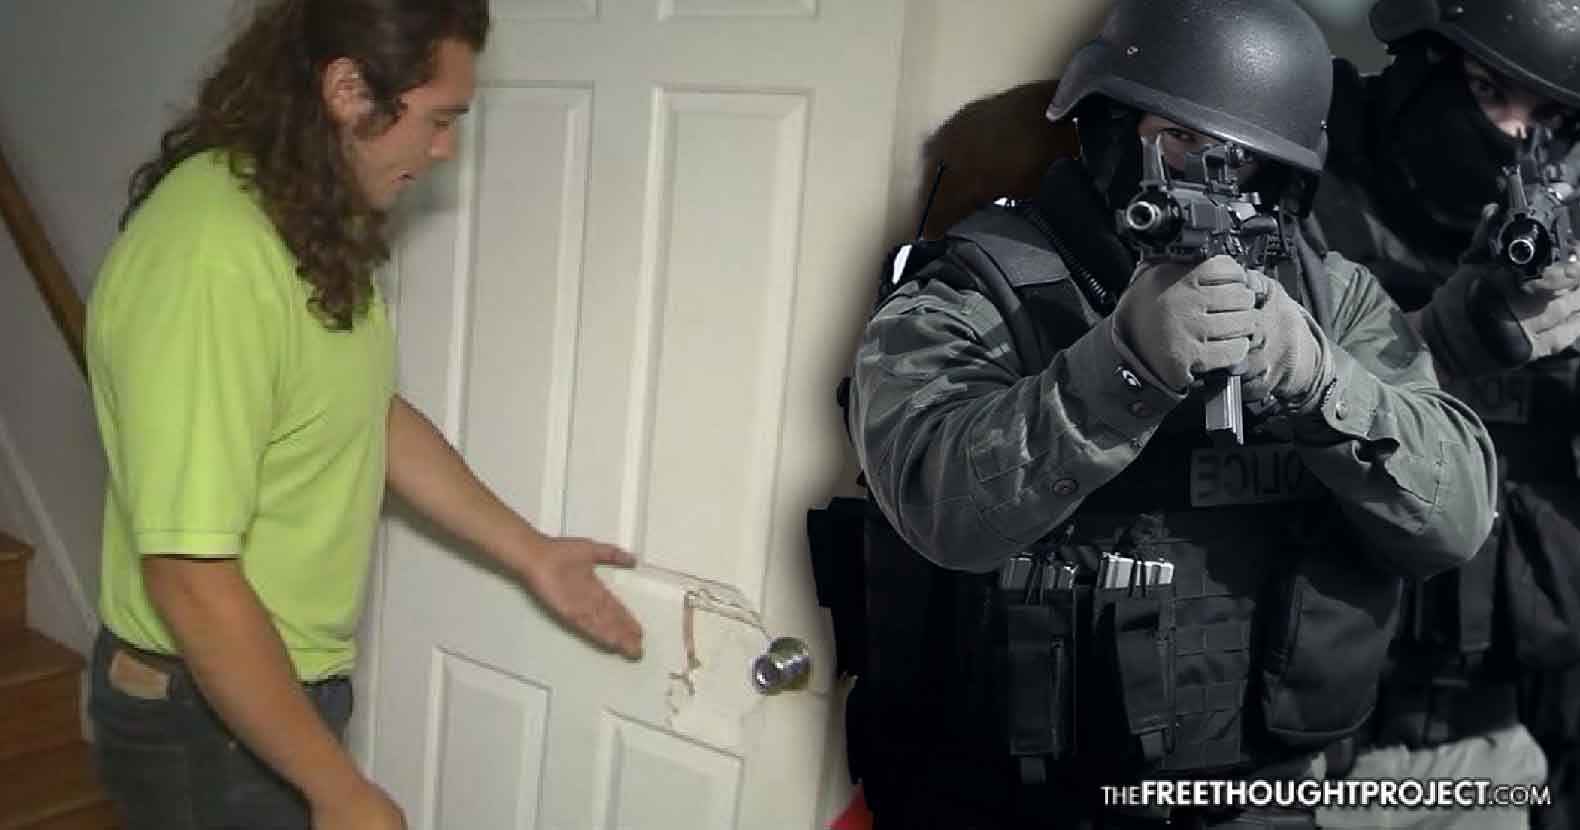 POV SWAT Team Raids the WRONG House with Elderly Woman